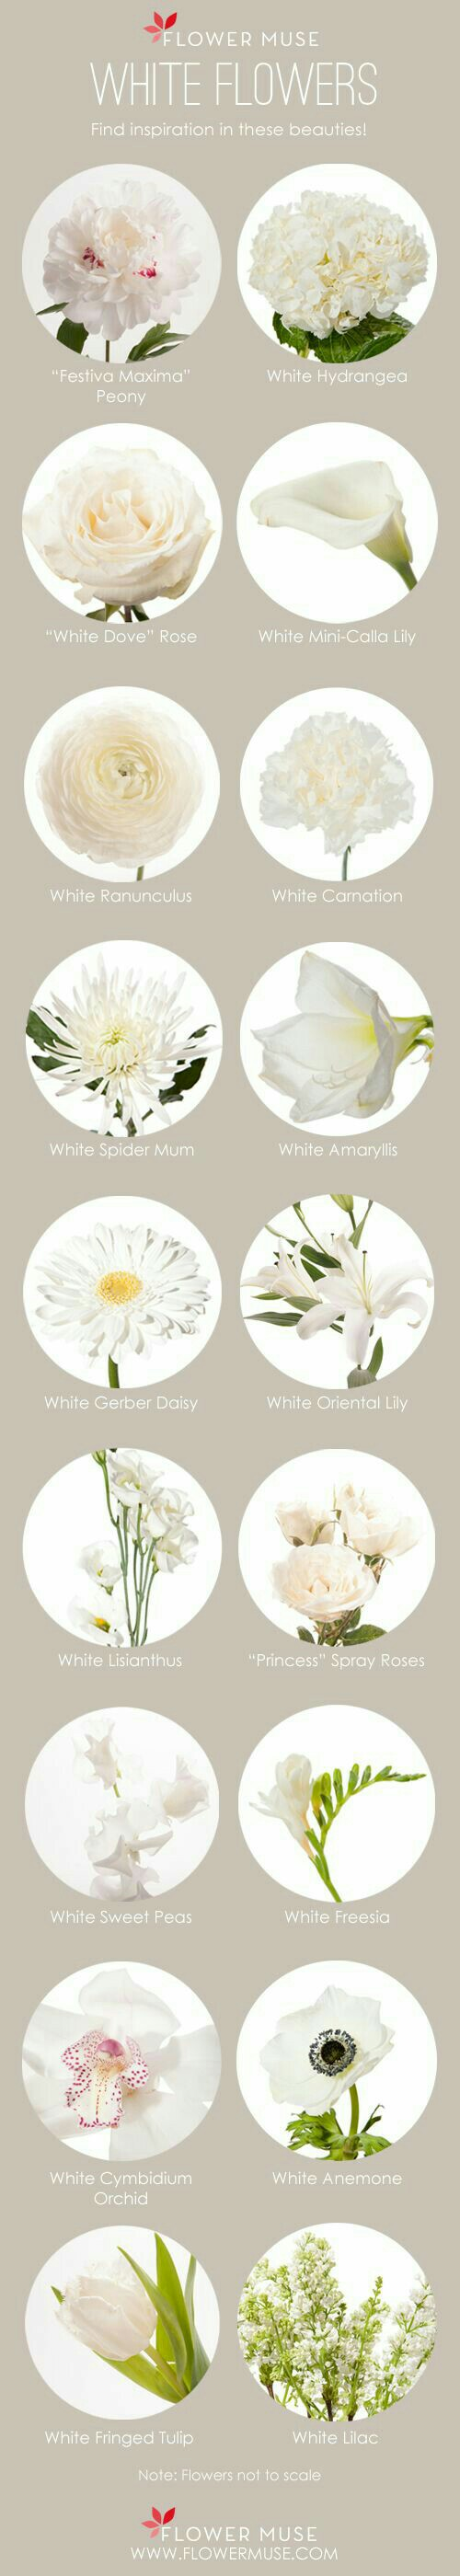 Pin by Denisa on Wedding | Pinterest | Flowers and Wedding